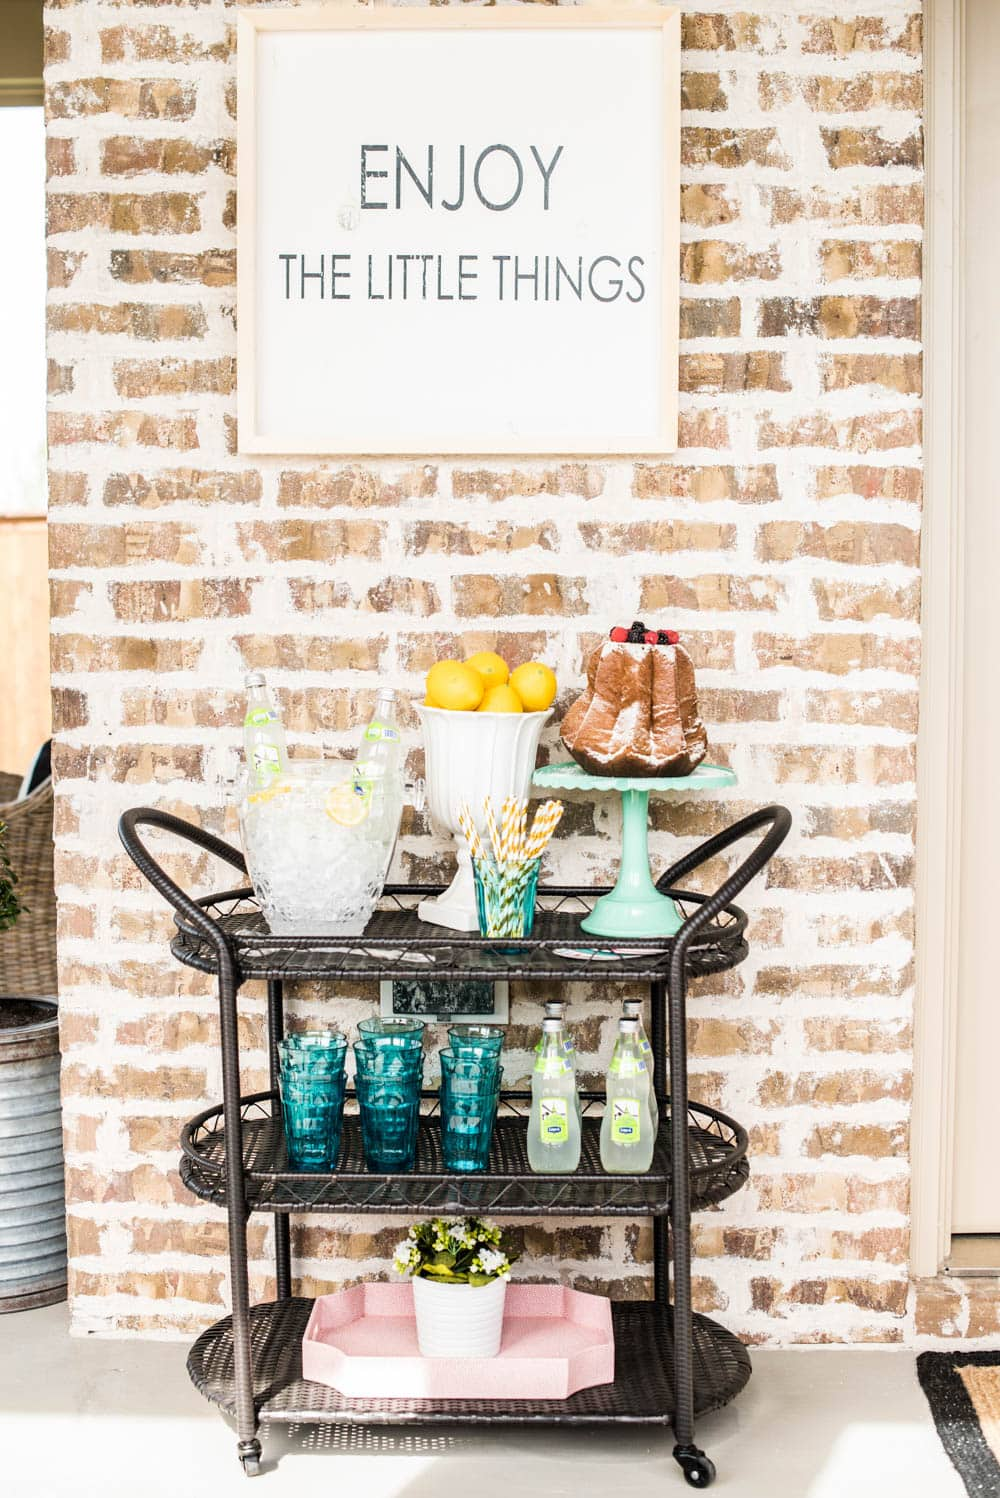 Grab these tips to create a fun springtime party with Items from @Tuesday Morning. #ad #TuesdayMorningFinds